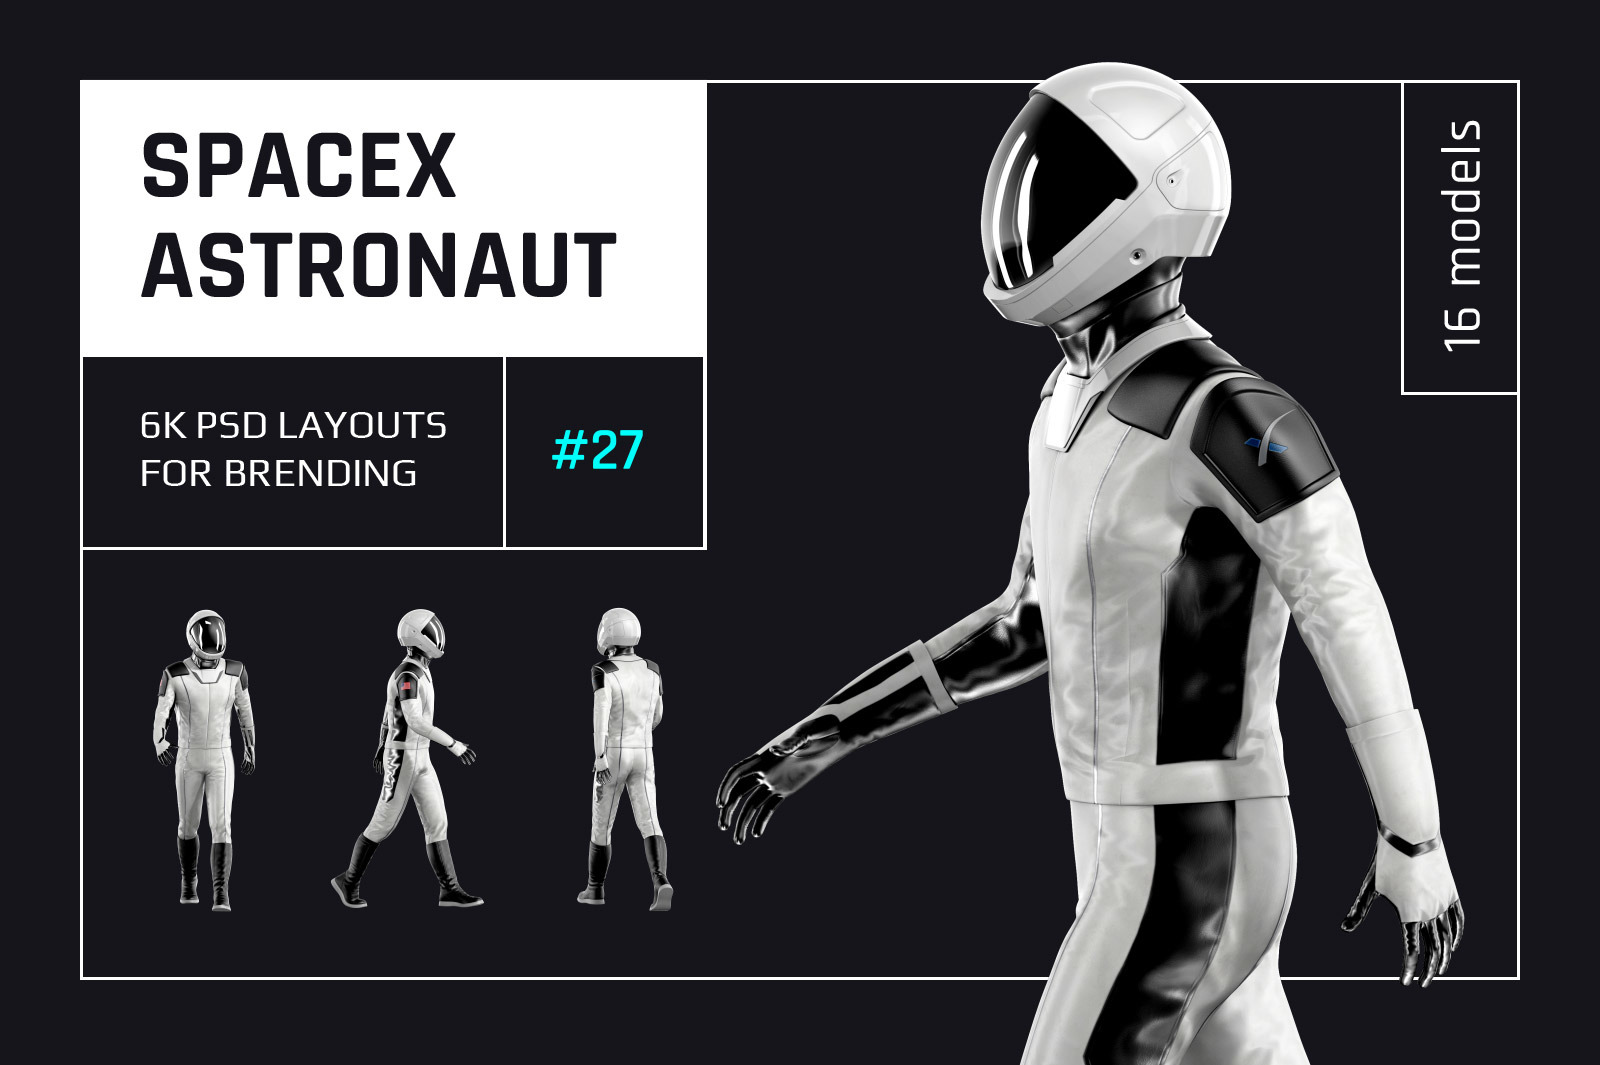 PSD Mockup 3D model SpaceX Astronaut #27